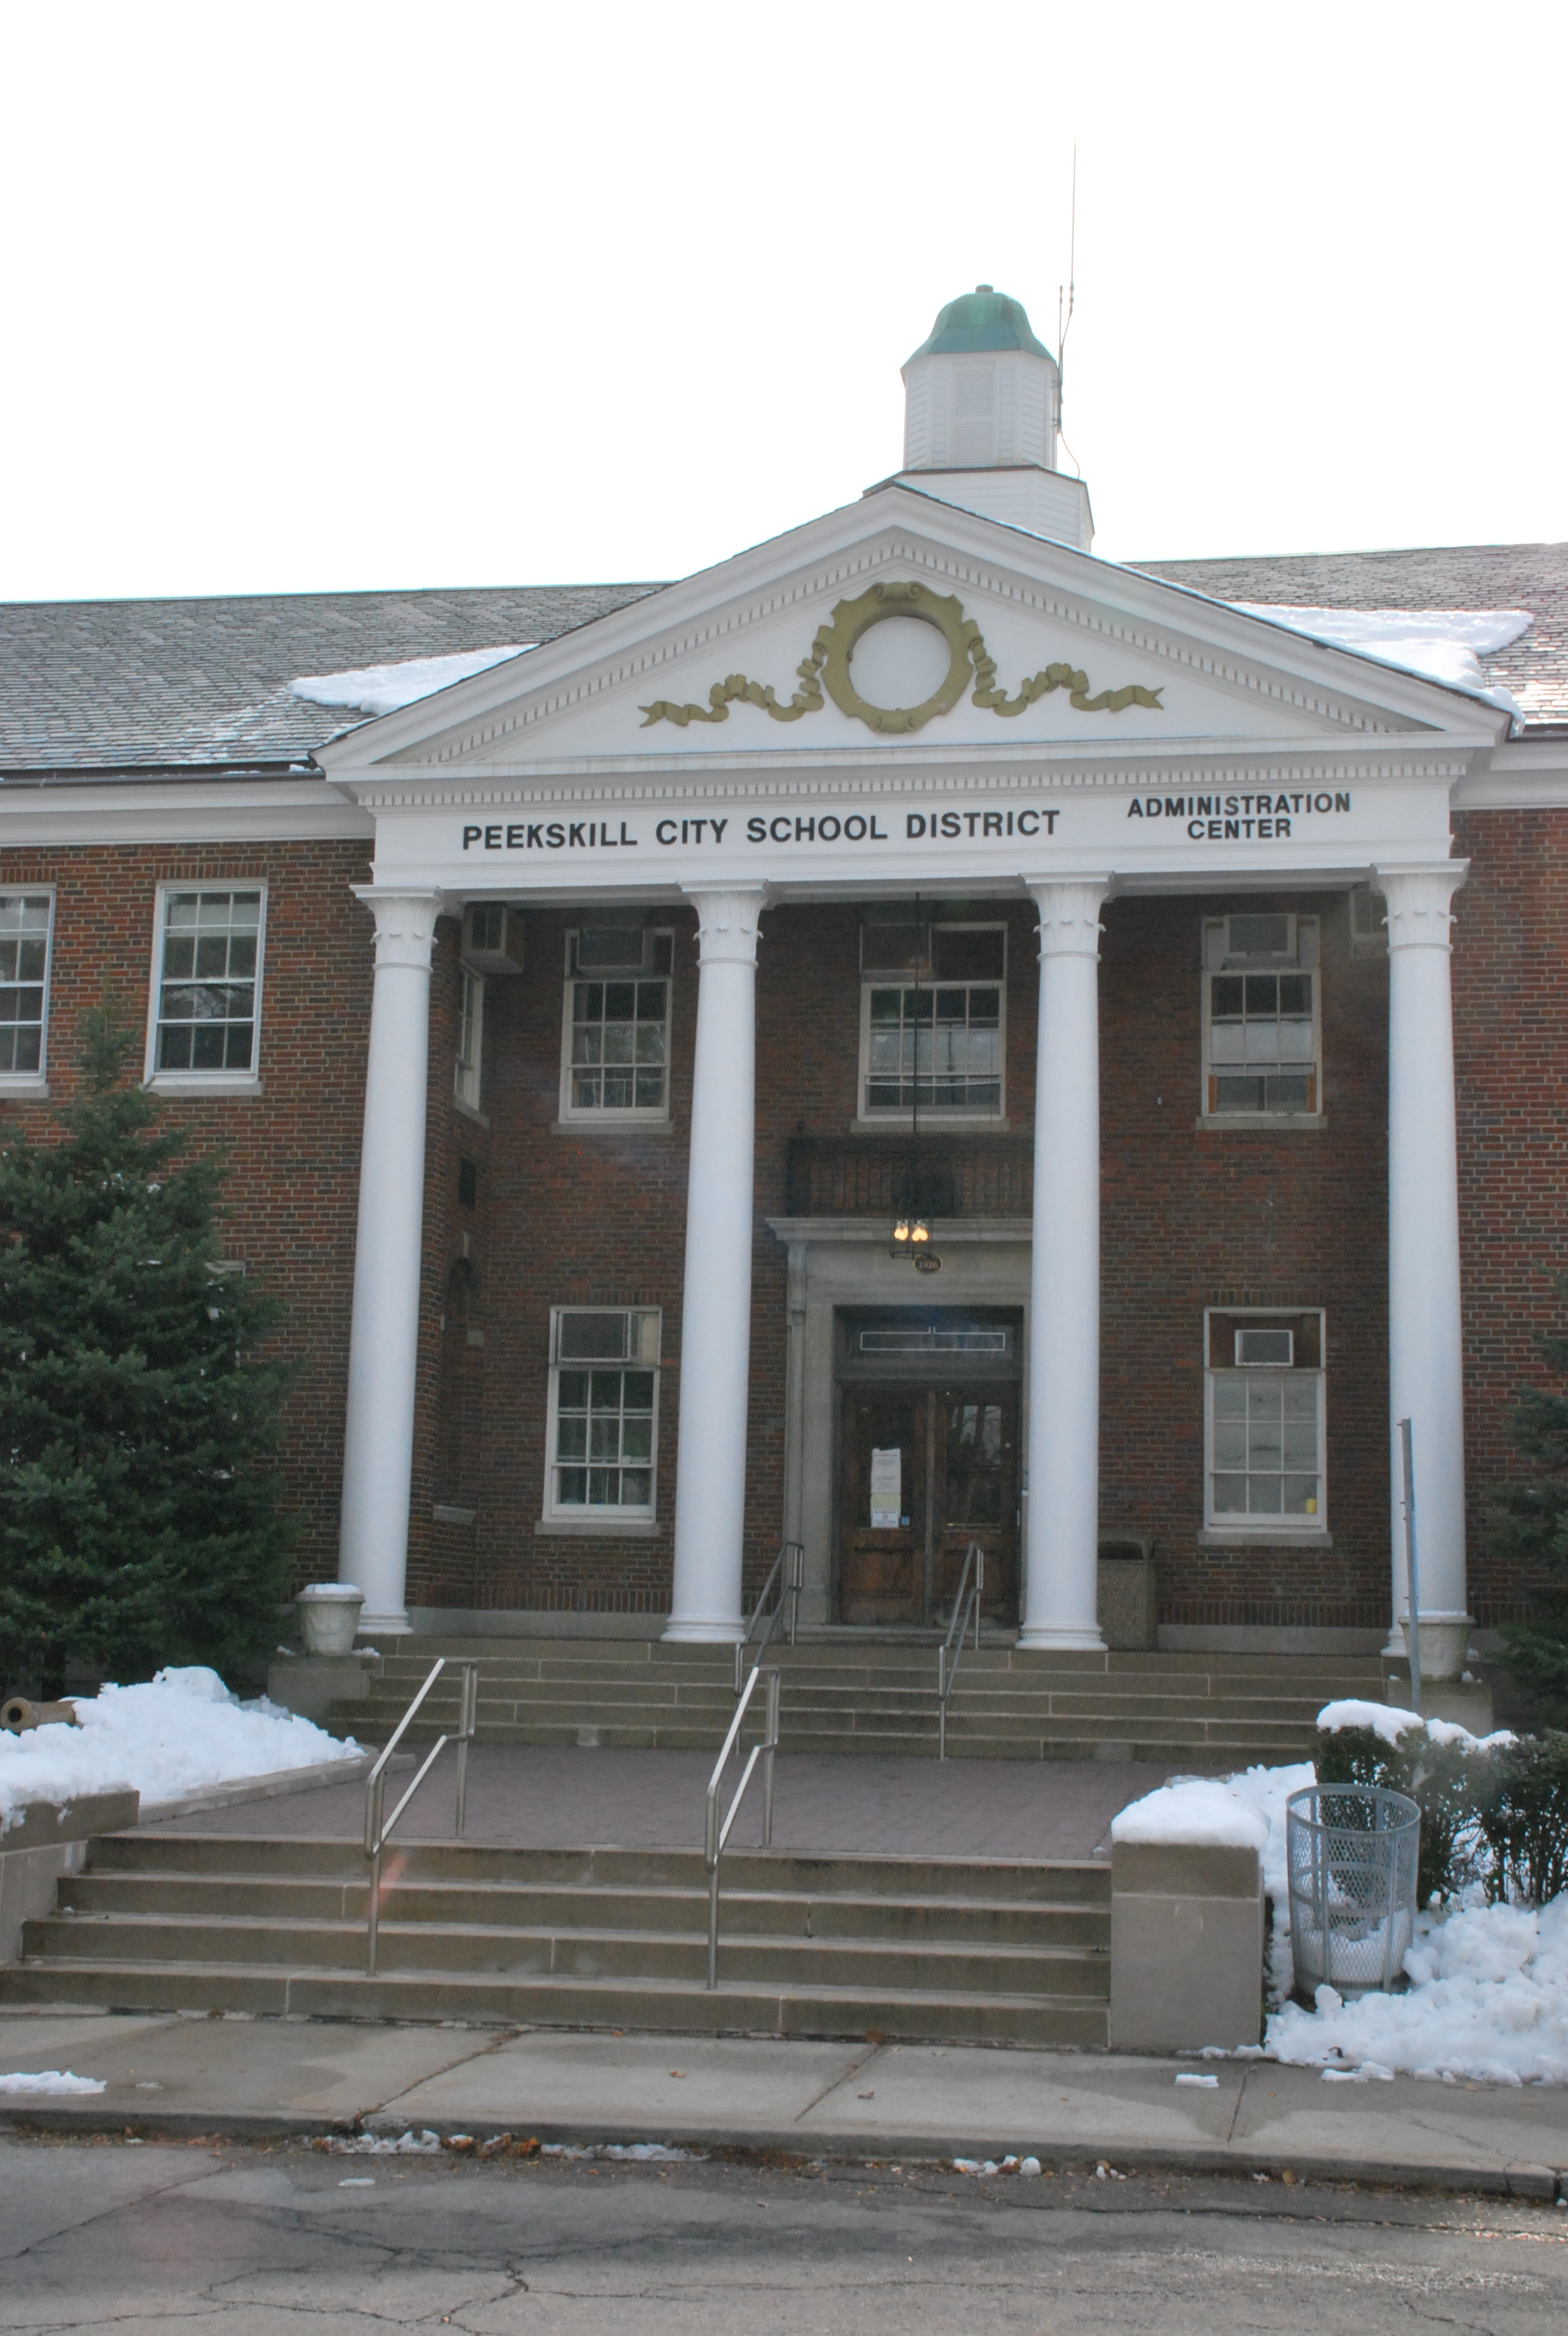 Peekskill City School District officials are investigating how 34 students received credit for work they did not do.